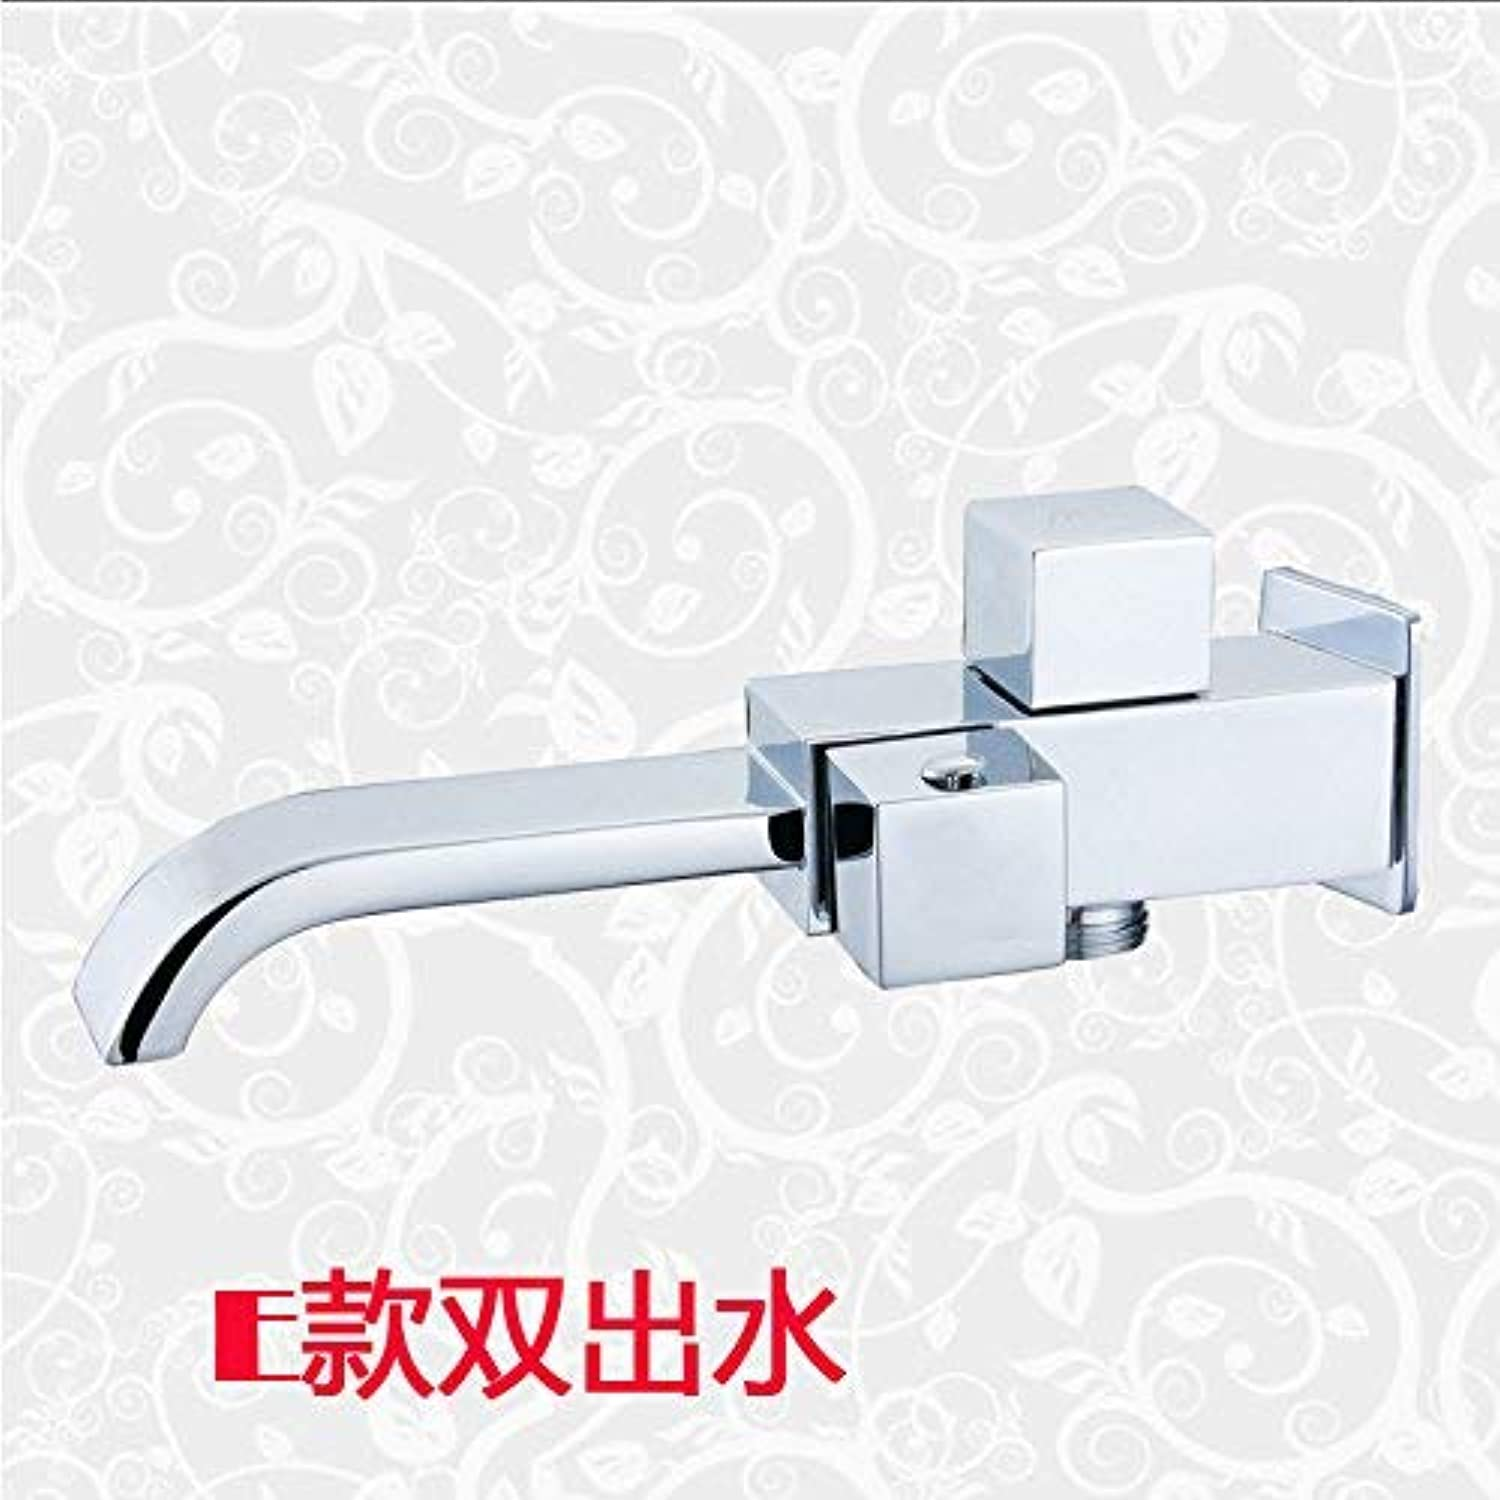 Qpw Kitchen Faucet hot and Cold Faucet 3KW Stainless Steel Faucet Electric Faucet Kitchen Fixtures DIY & Tools